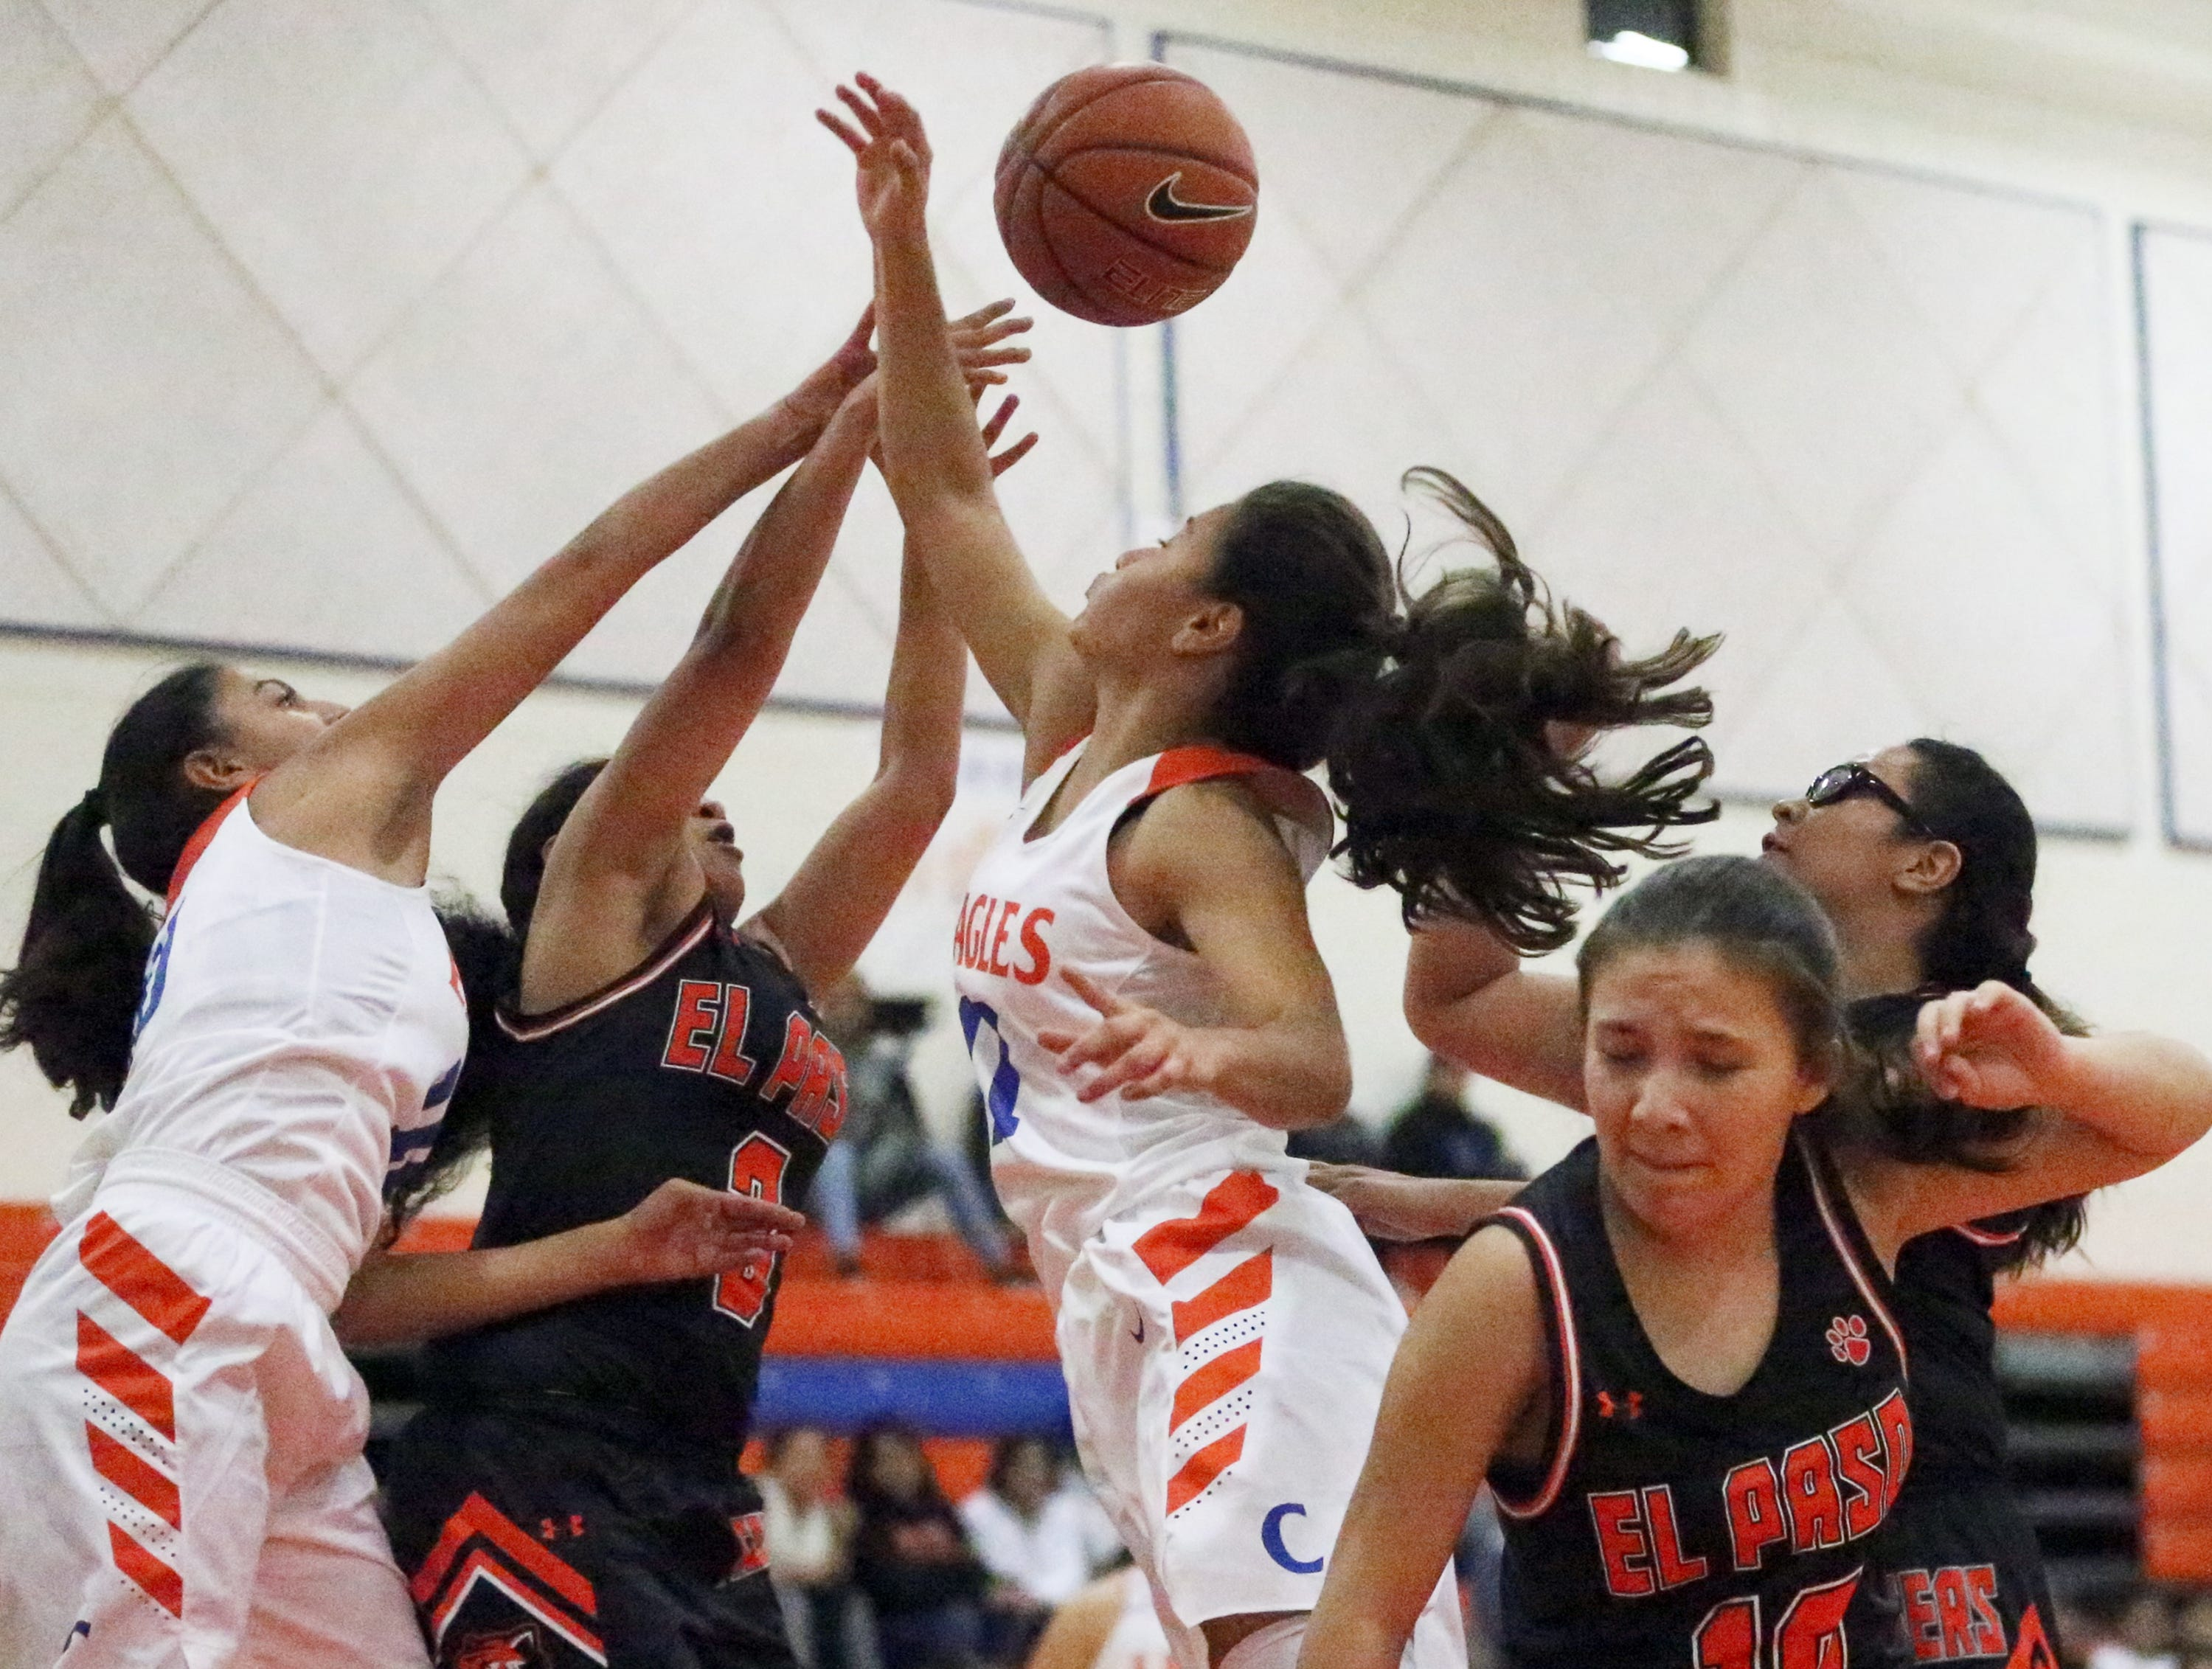 Canutillo and El Paso players battle for a rebound during their Tuesday night game at Canutillo.